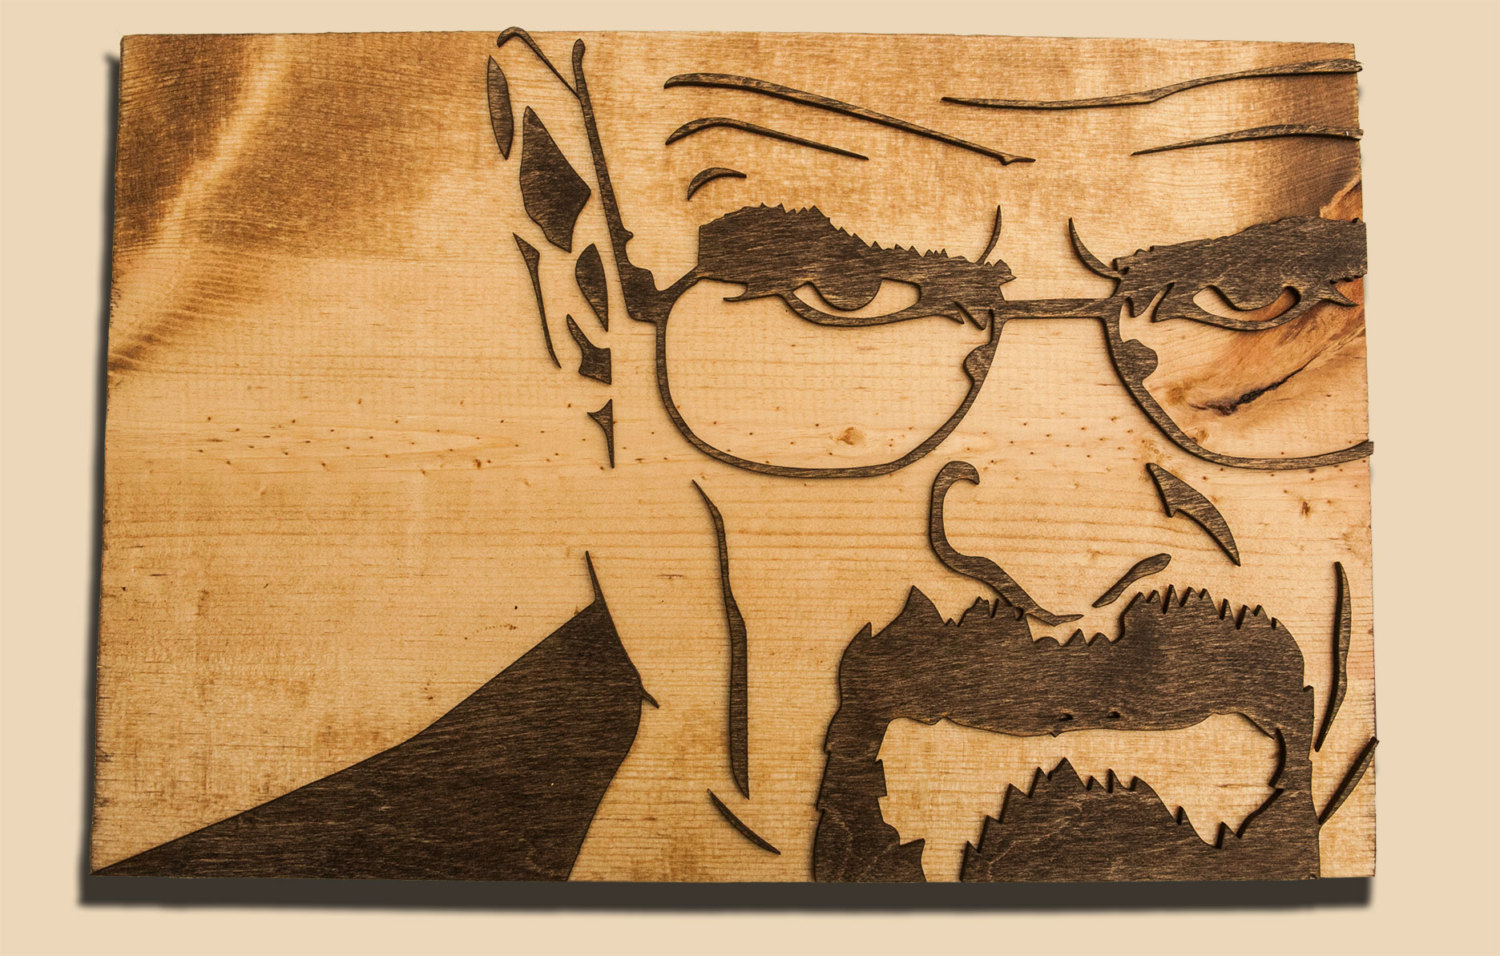 Breaking Bad 3D sculptured wall hanging wooden art. Walter White ...